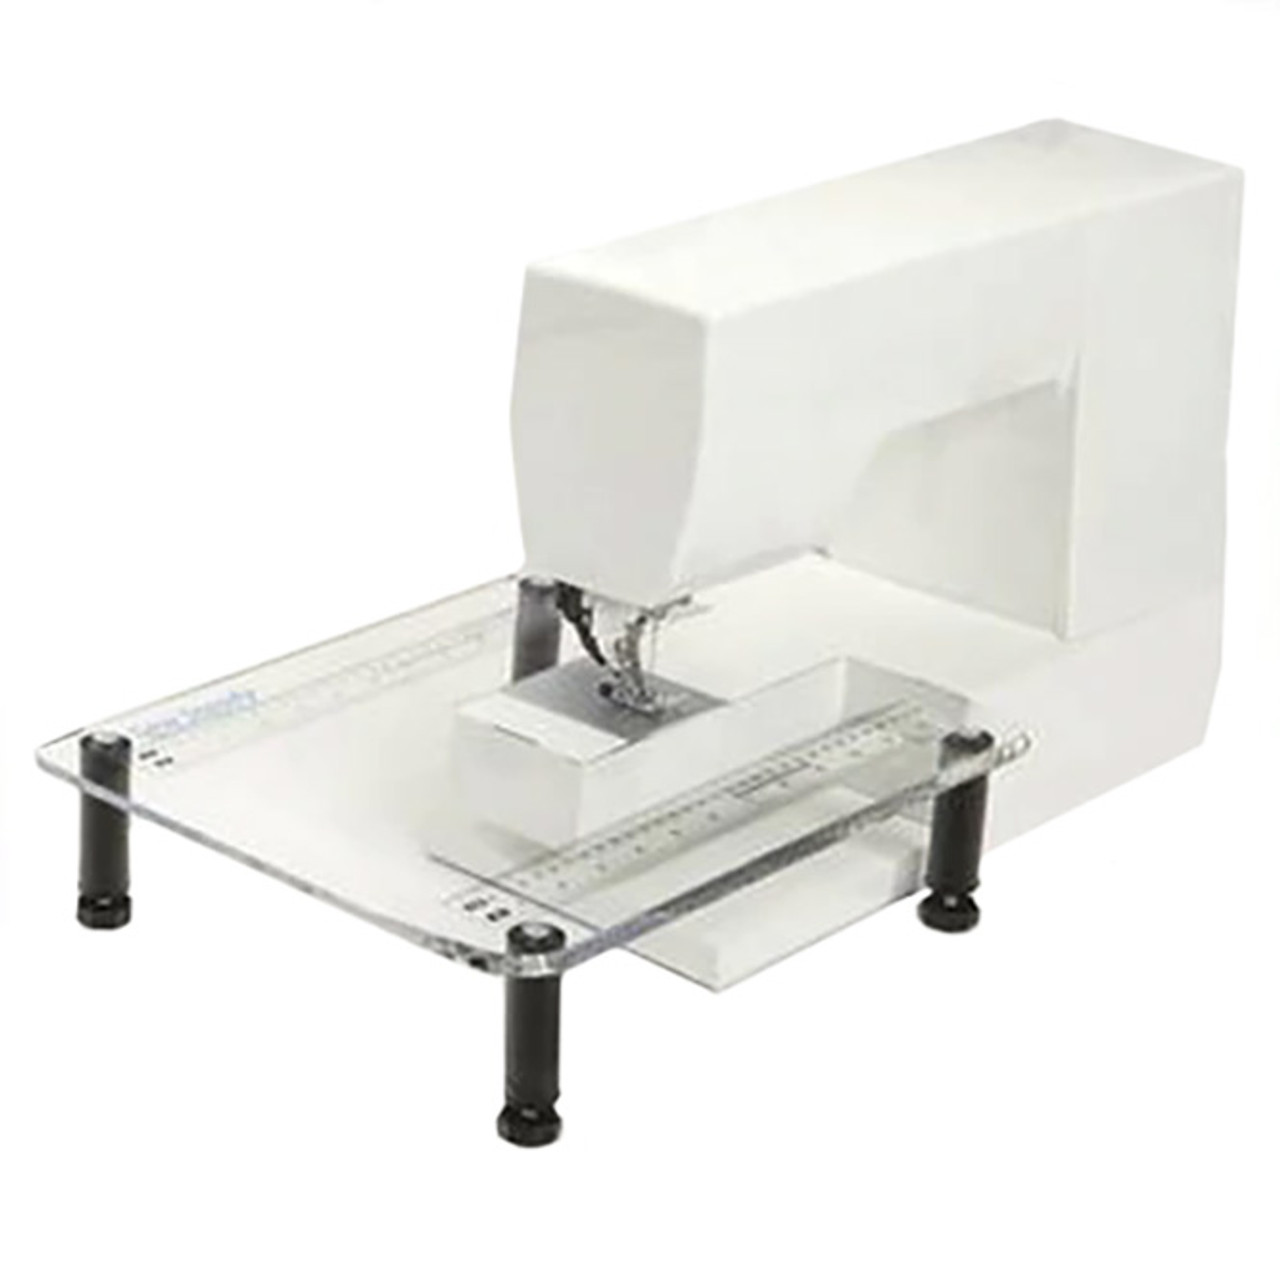 Sewing Machine Extension Table.Sew Steady 11 5 X 15 Extension Table Fits Janome Hd1000 Tb12 And More